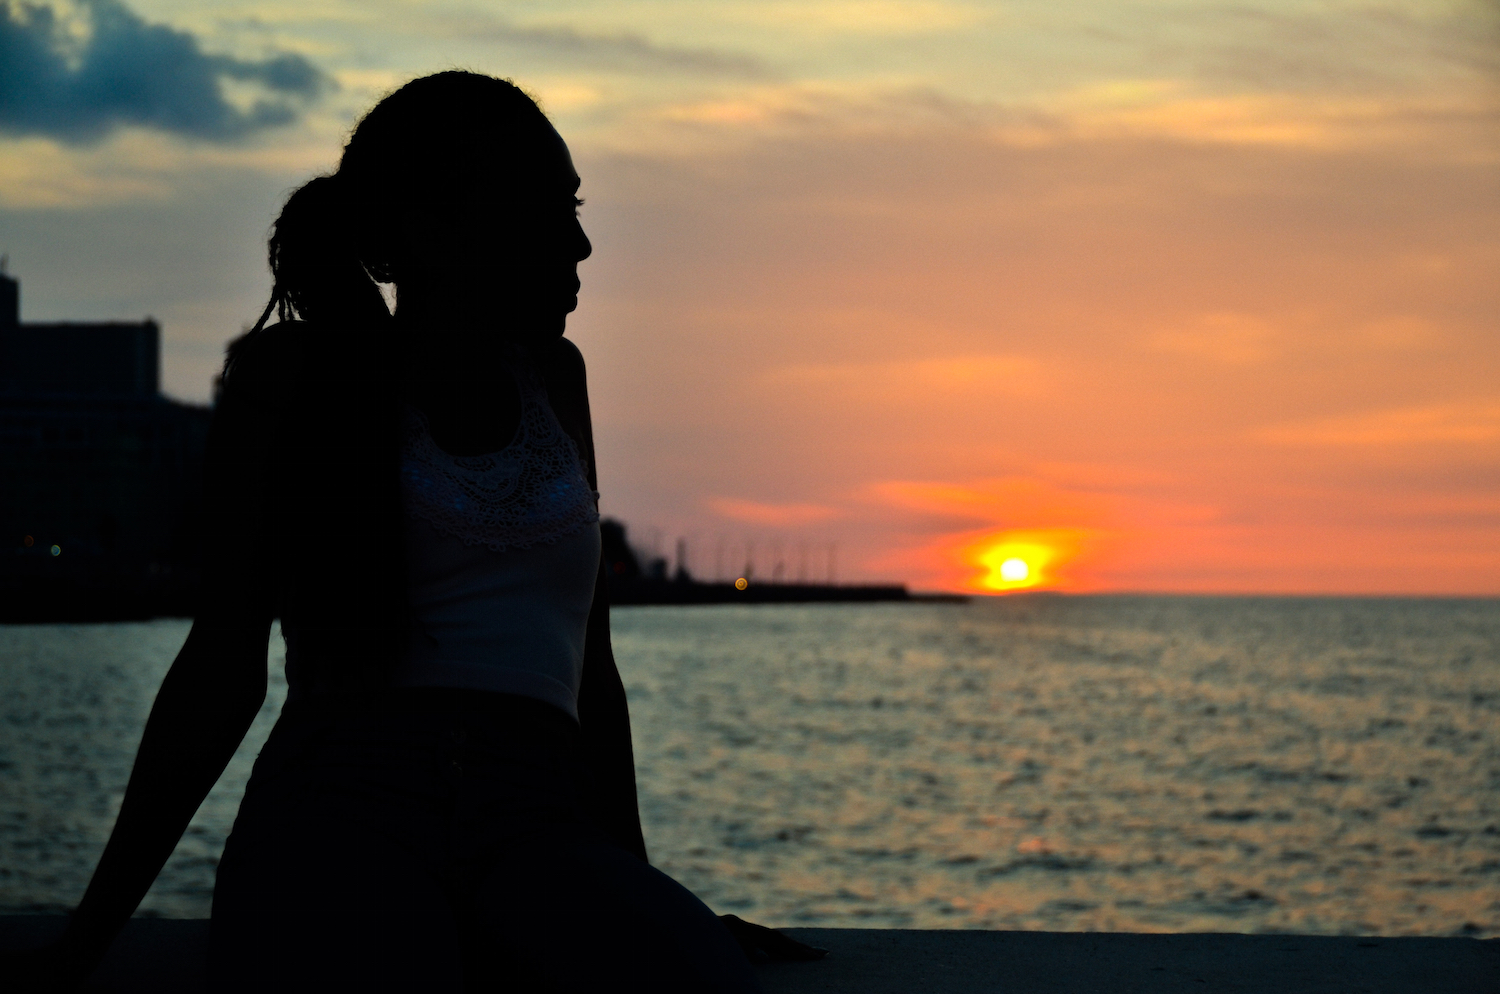 Silhouette of a woman facing the sunset over water